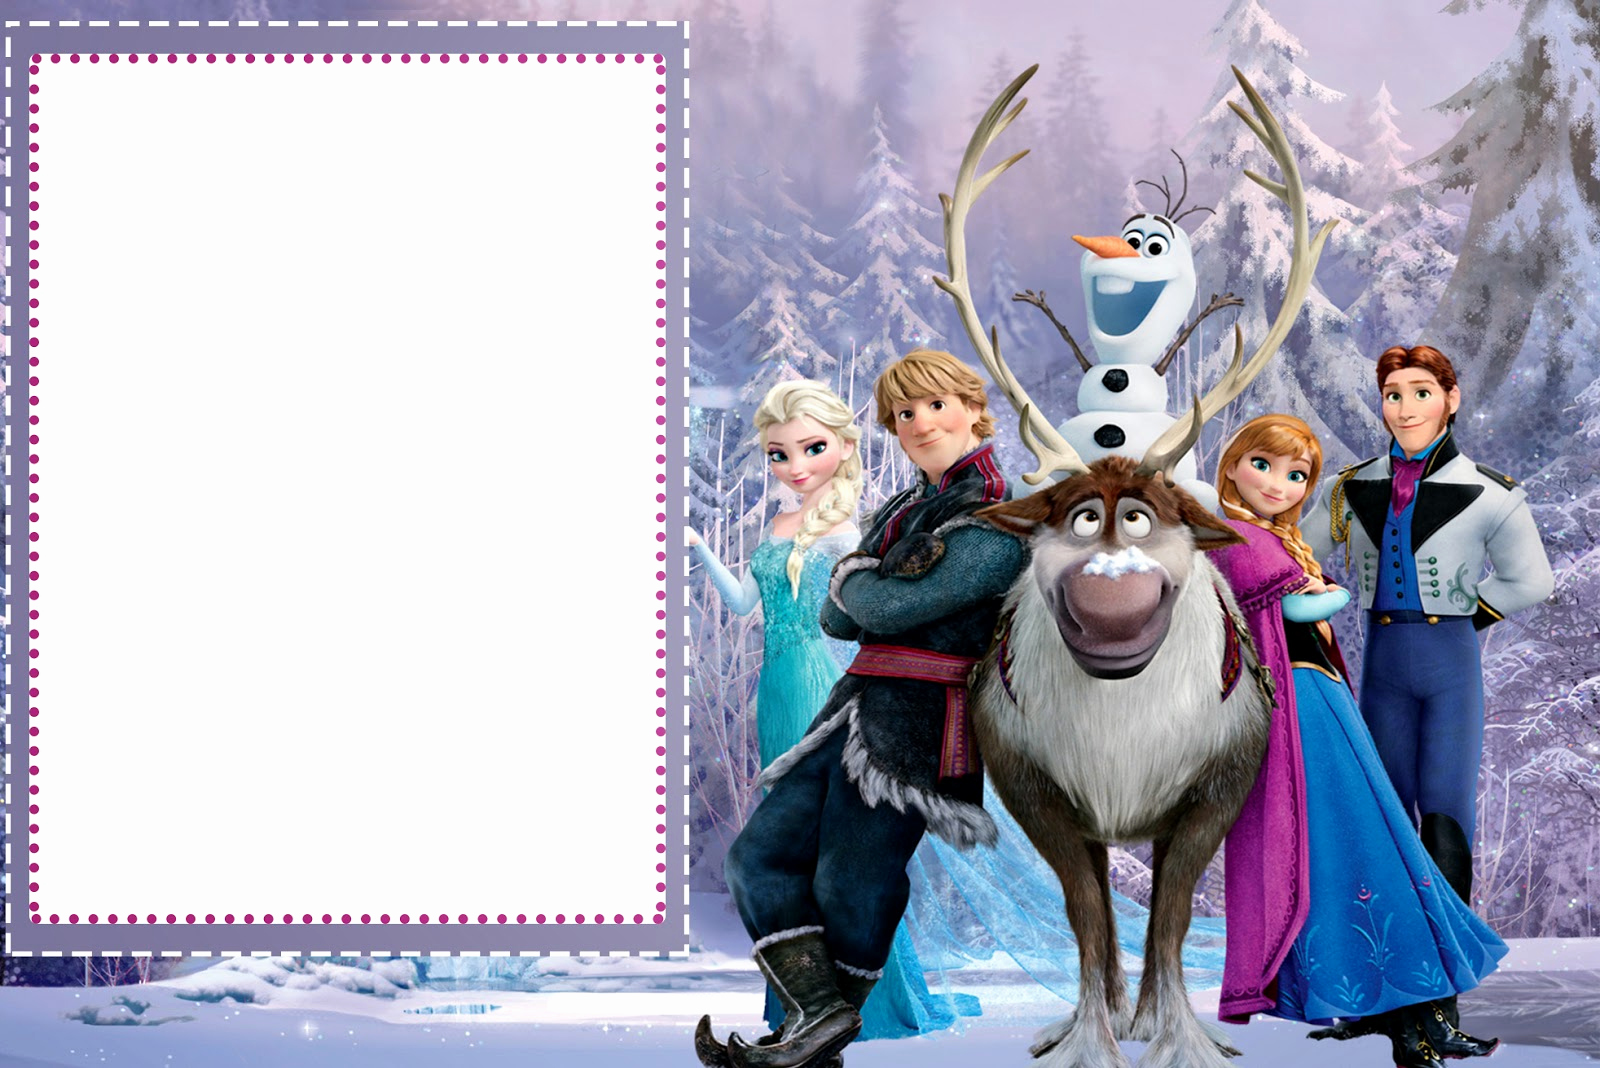 Frozen Invitation Printable Free Fresh Frozen Free Printable Cards or Party Invitations Oh My